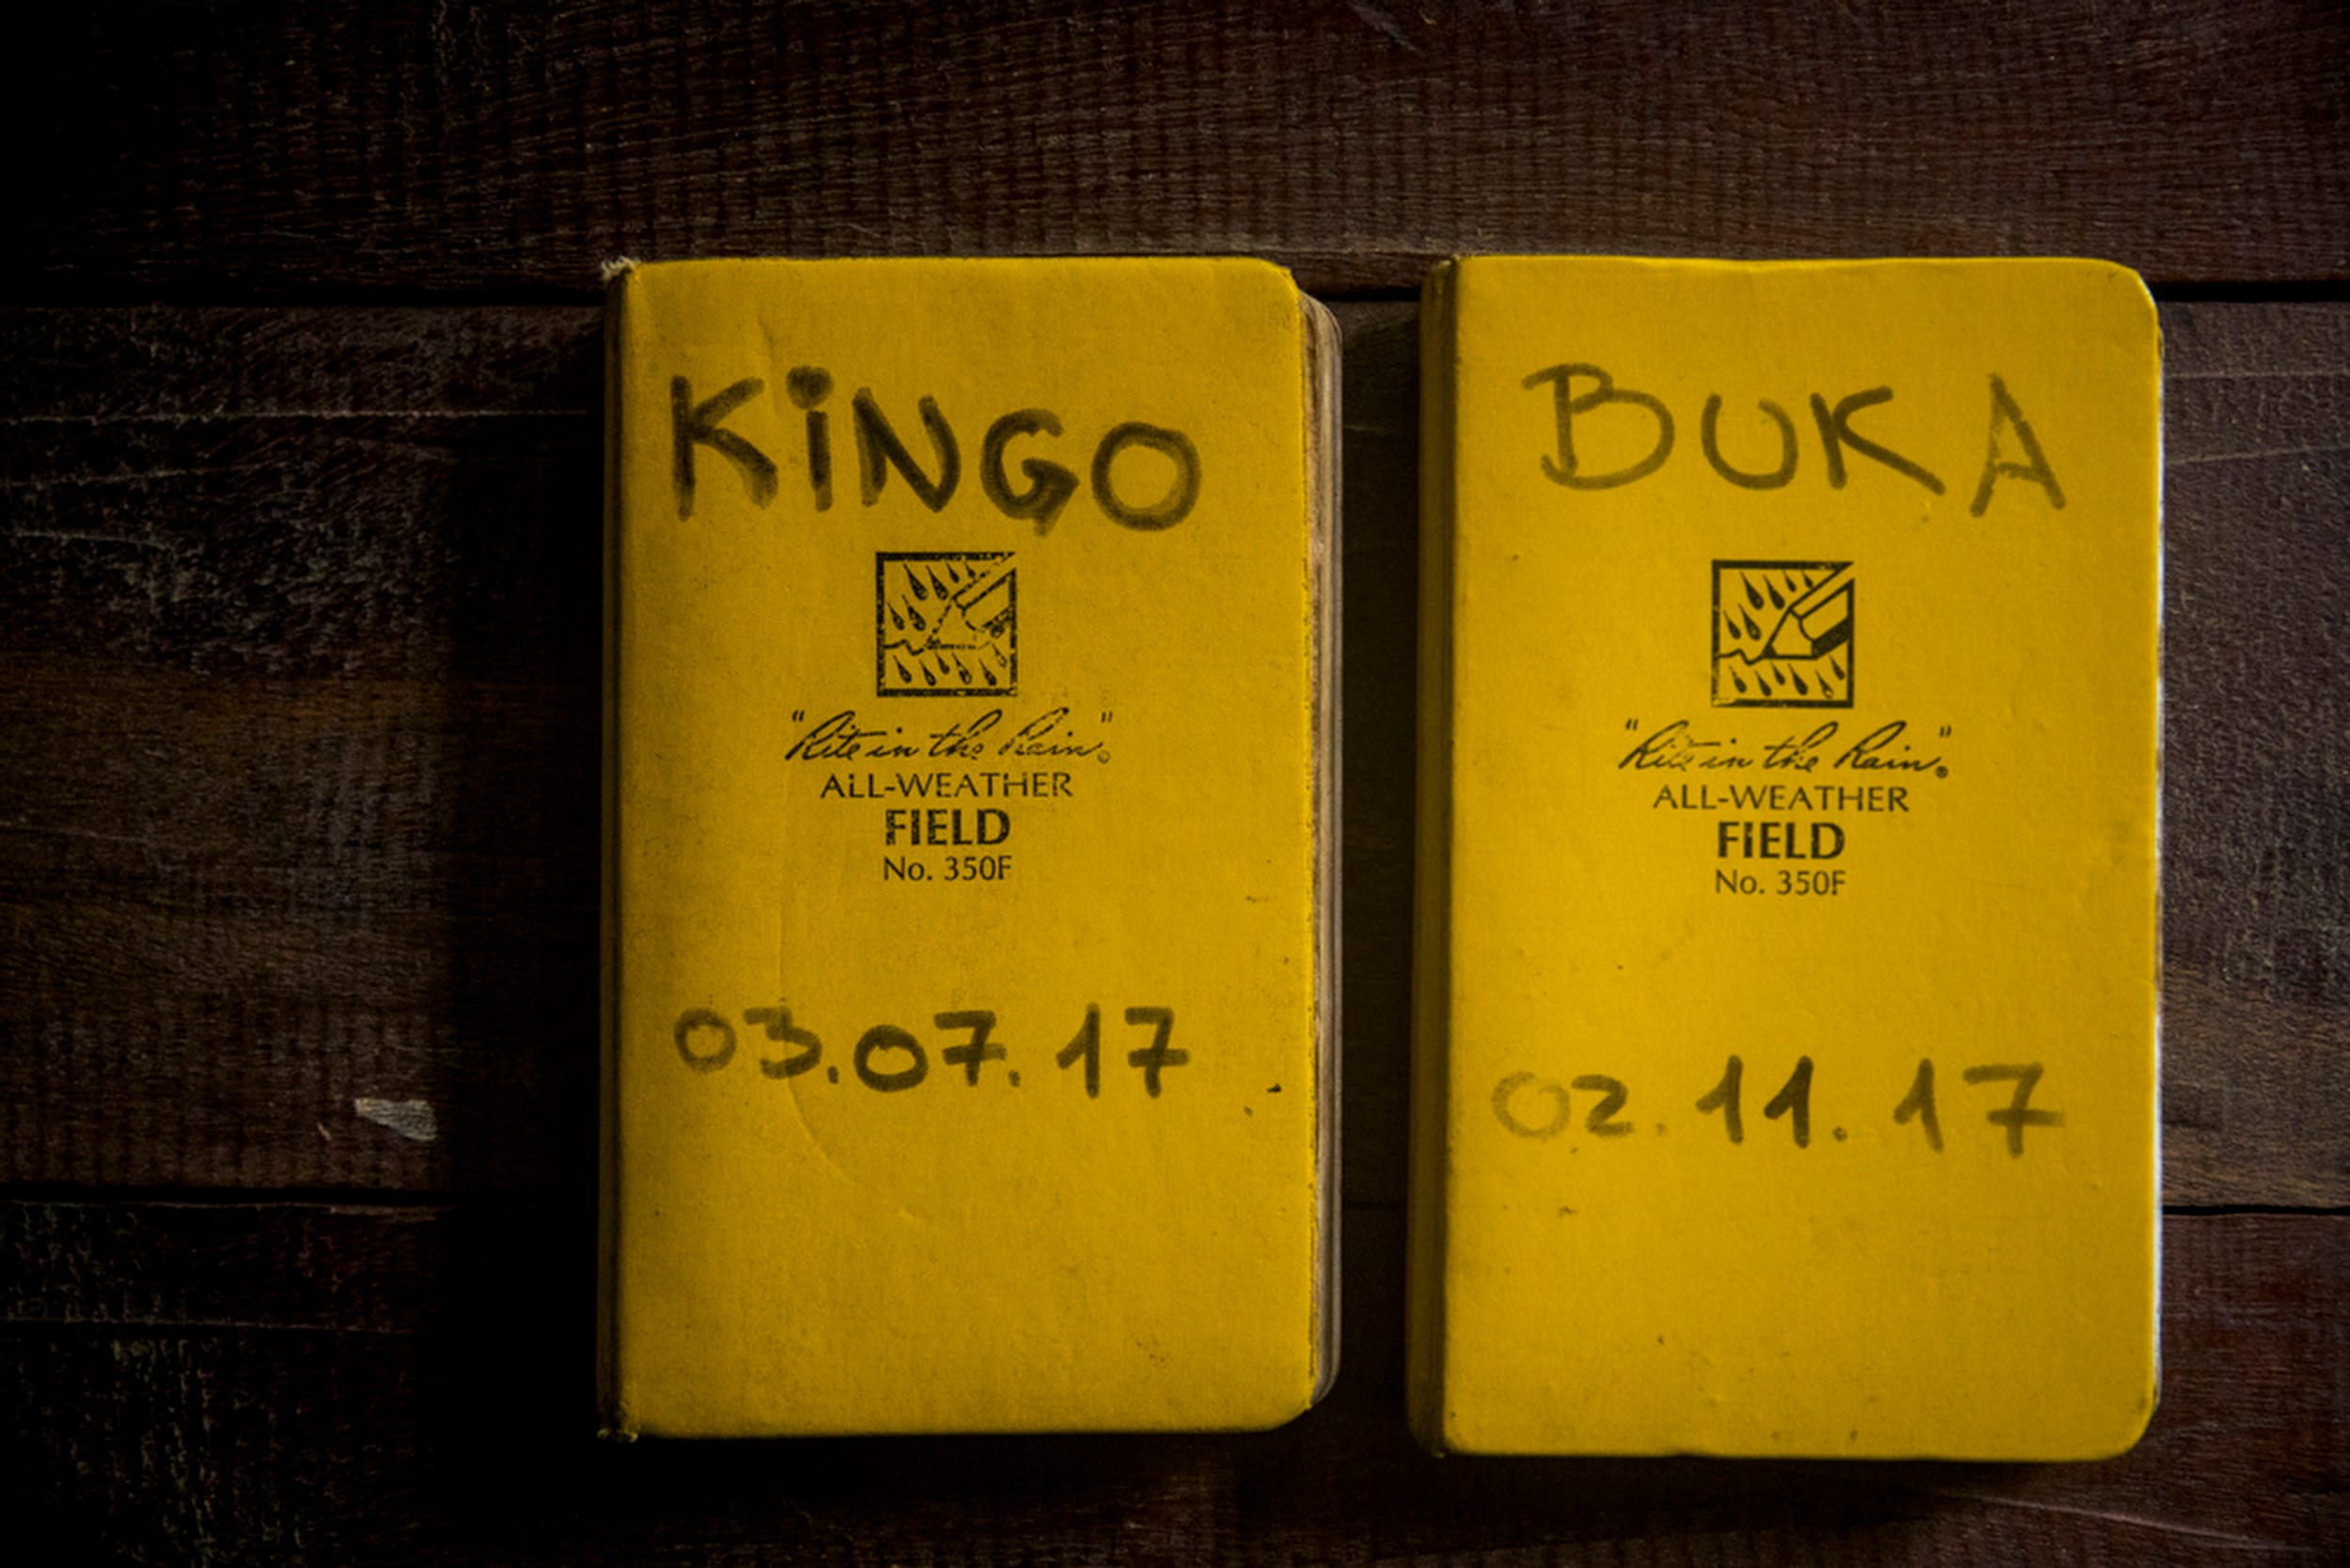 Researchers and trackers log their observations of Kingo and Buka's group in these notebooks.